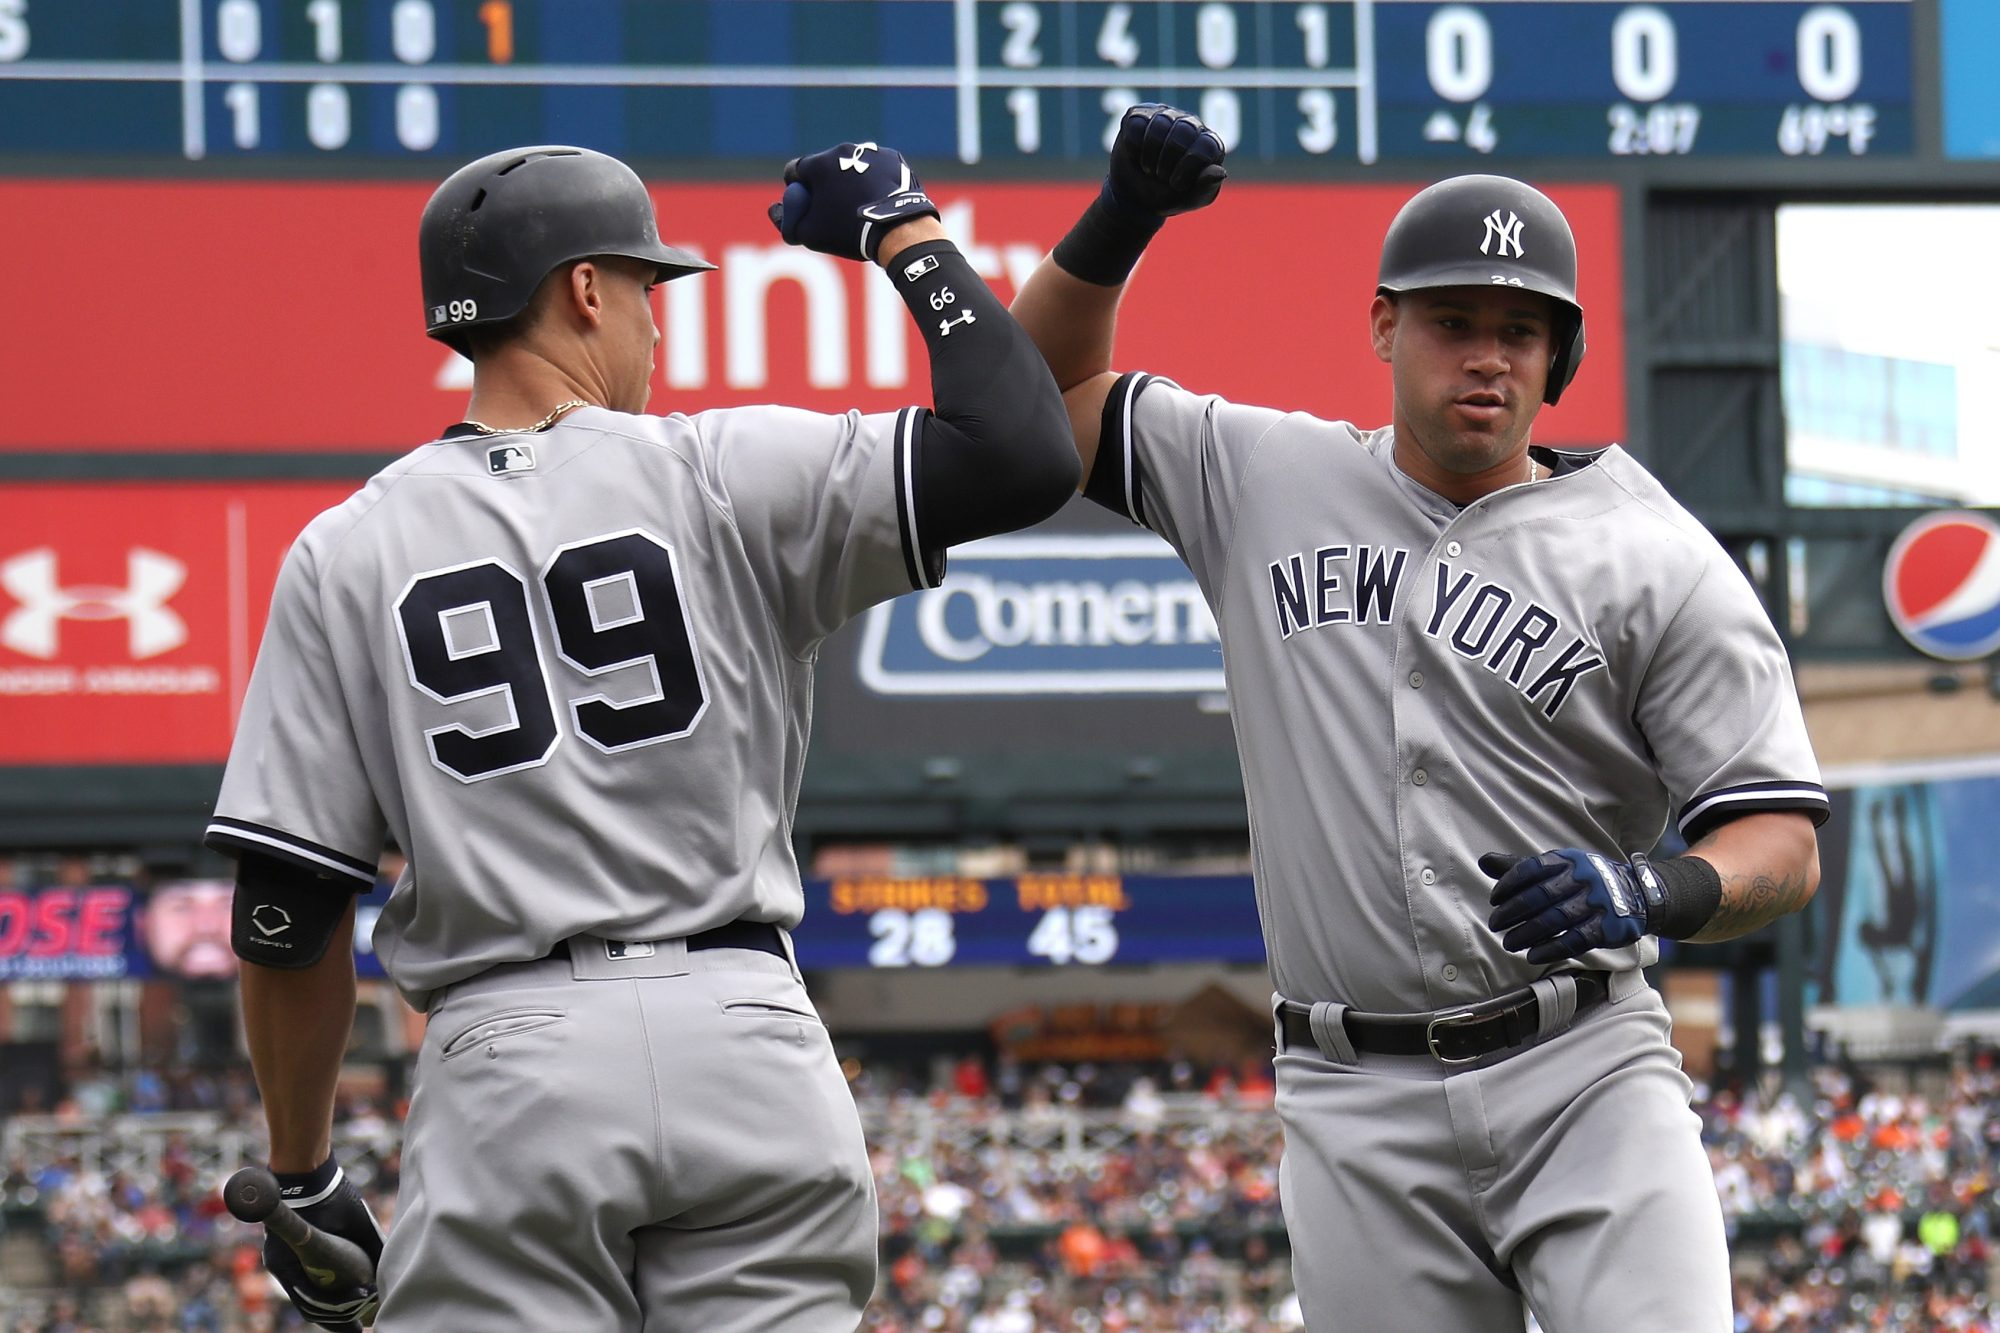 New York Yankees: All Eyes Should Be On Gary Sanchez, Not Aaron Judge